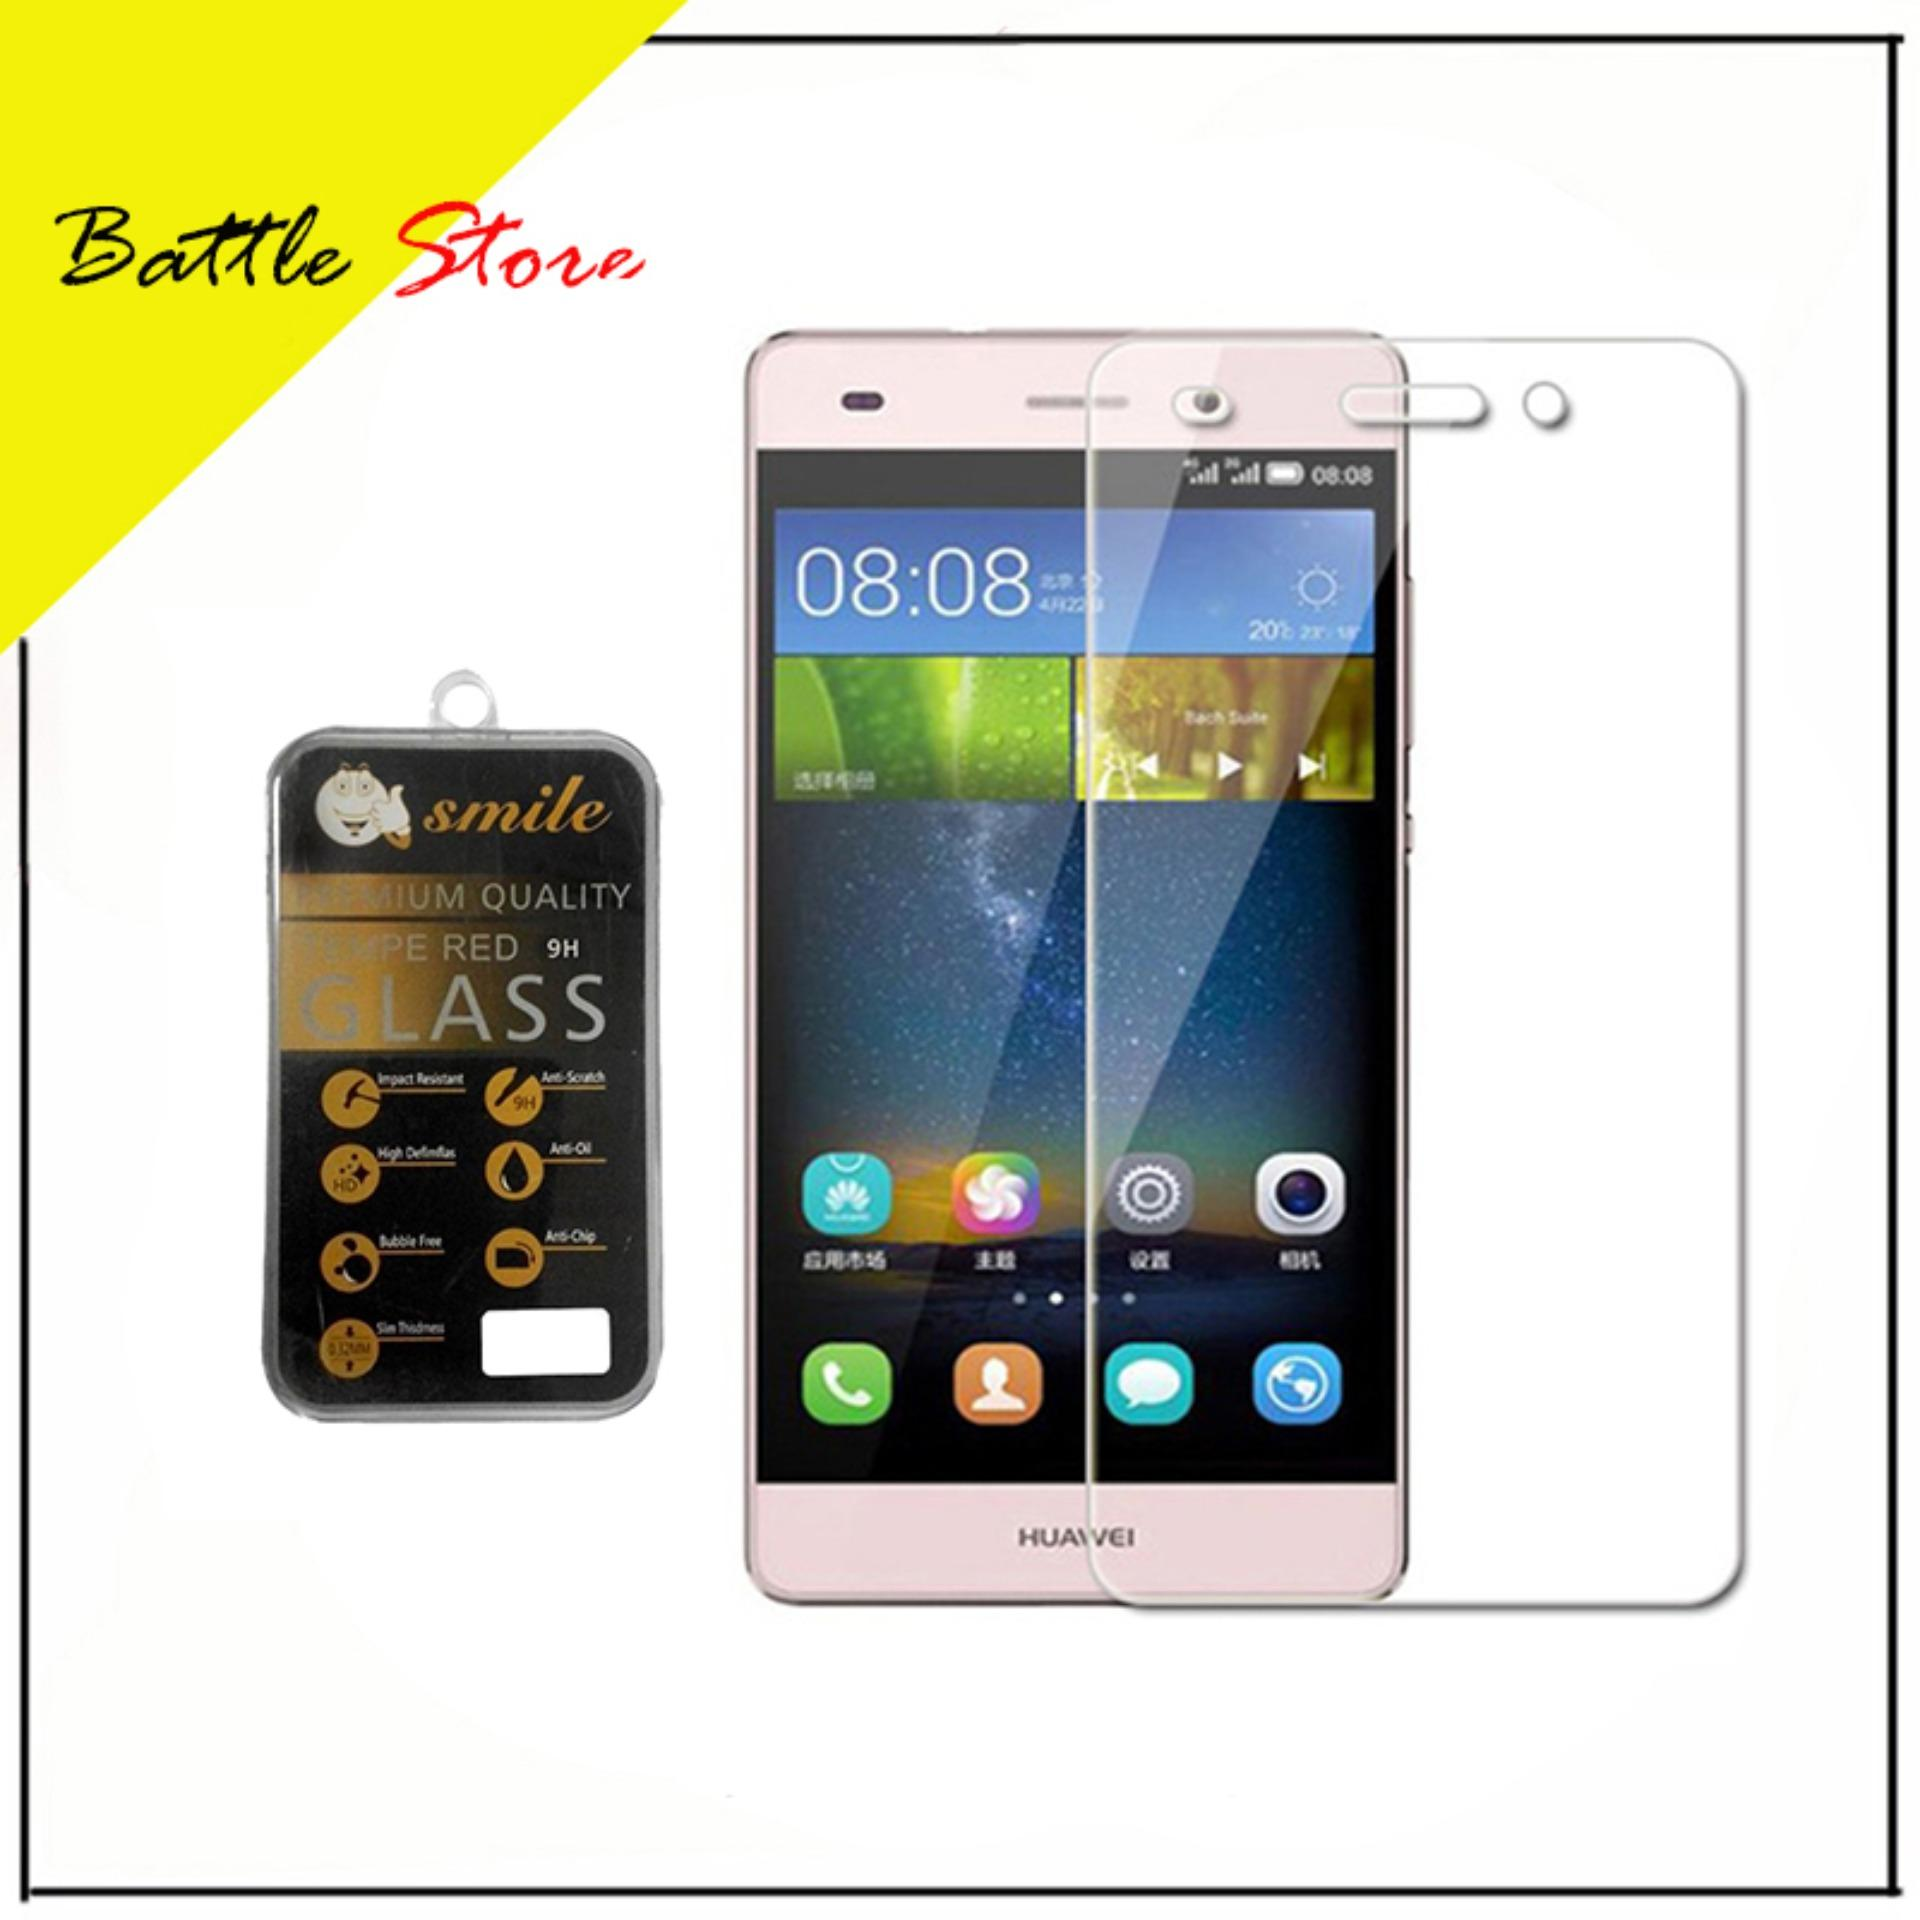 Huawei P9 Plus Smile Screen Protector Tempered Glass / Anti Gores Kaca - White Clear